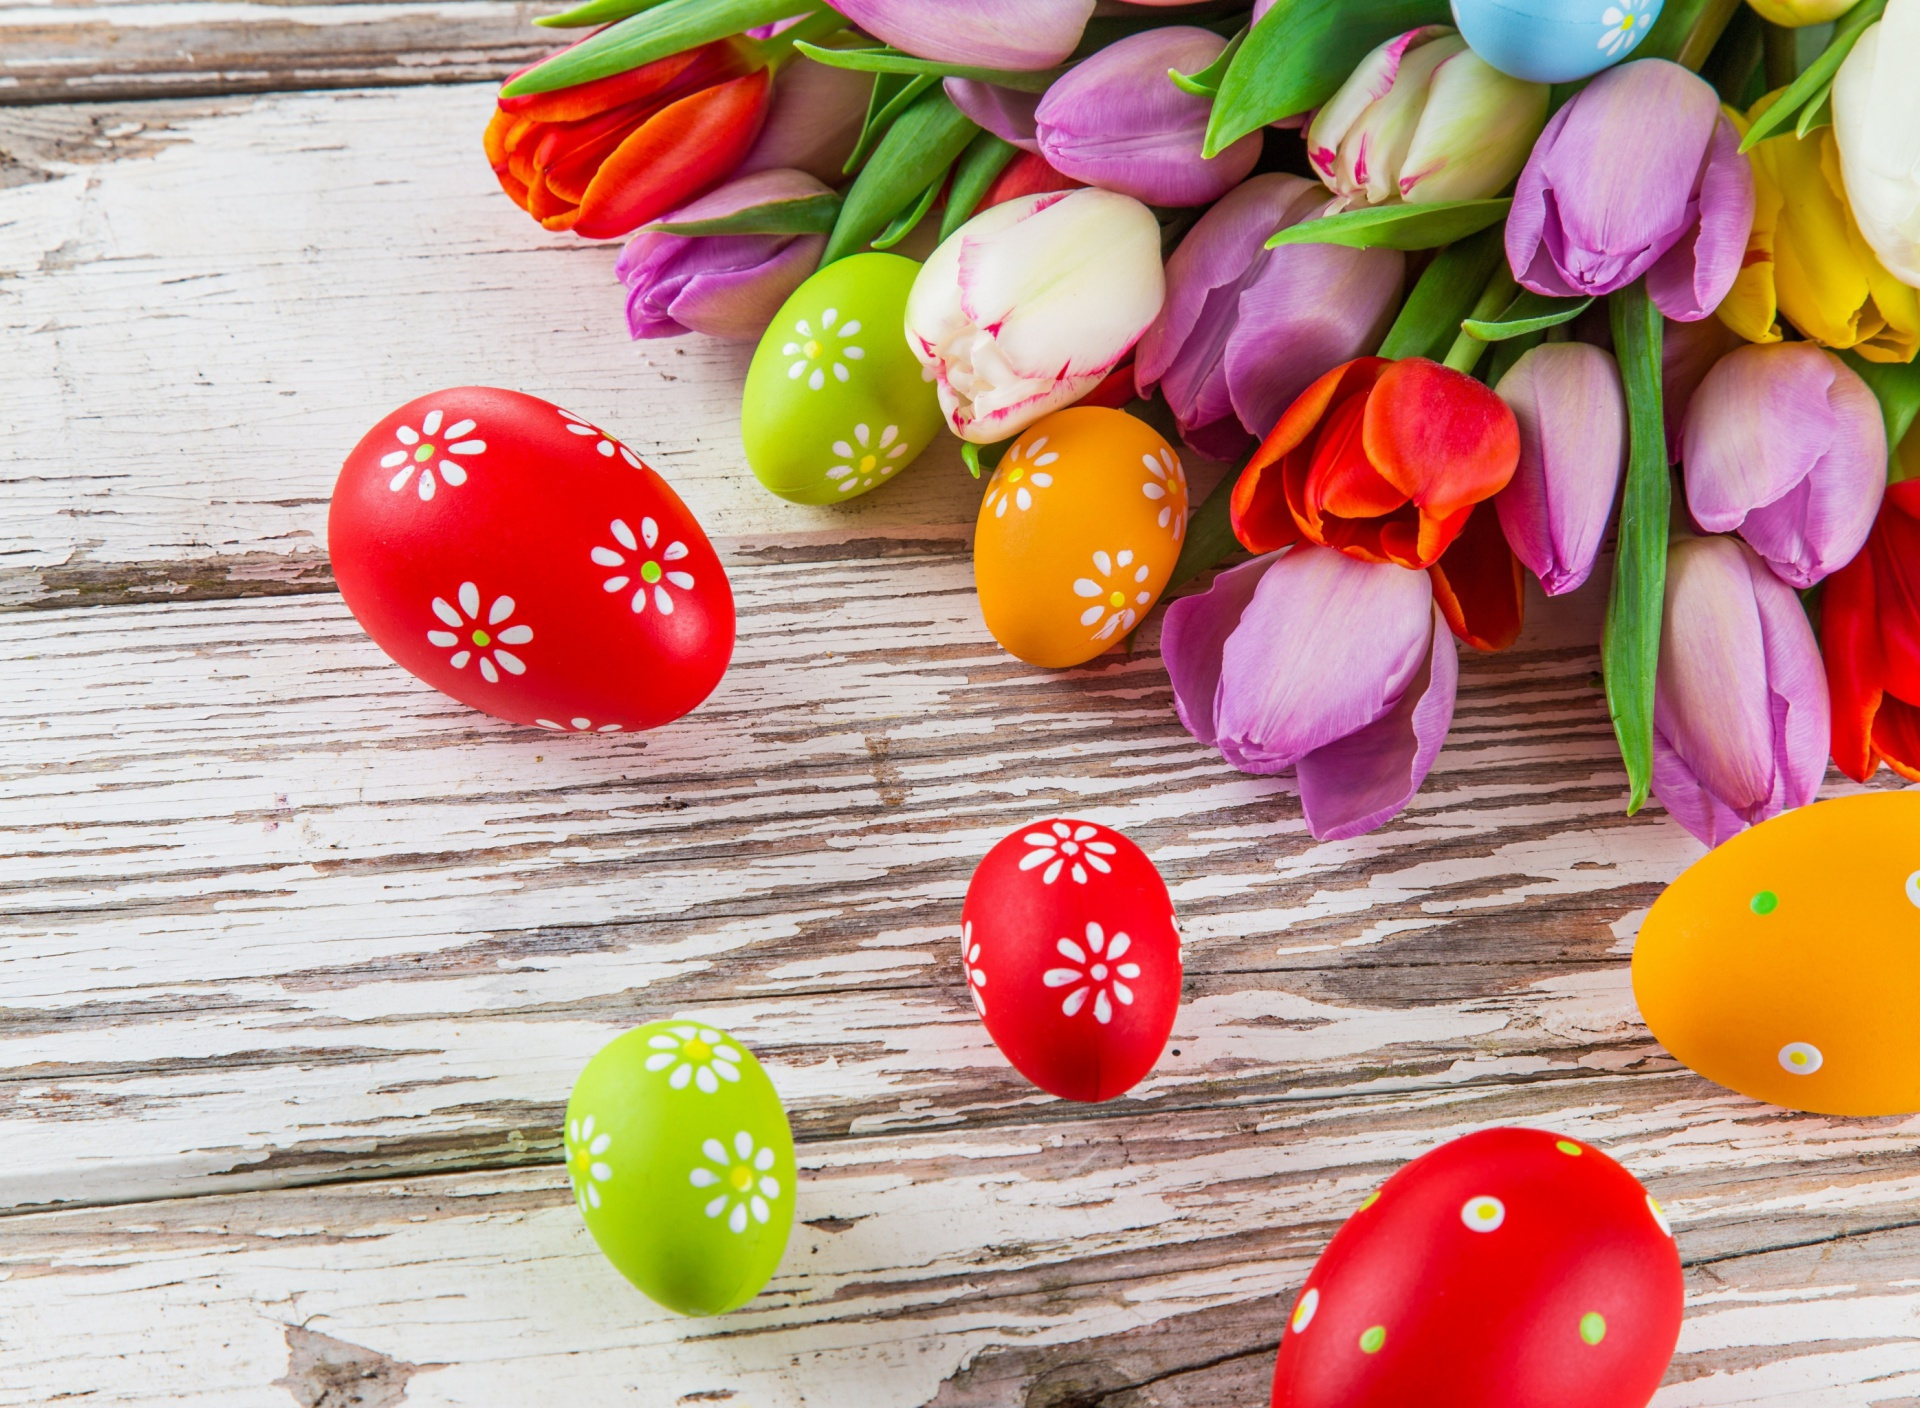 Me62 Turtle Sea Ocean Animal Parallax Hd: Easter Tulips And Colorful Eggs Wallpaper For Samsung